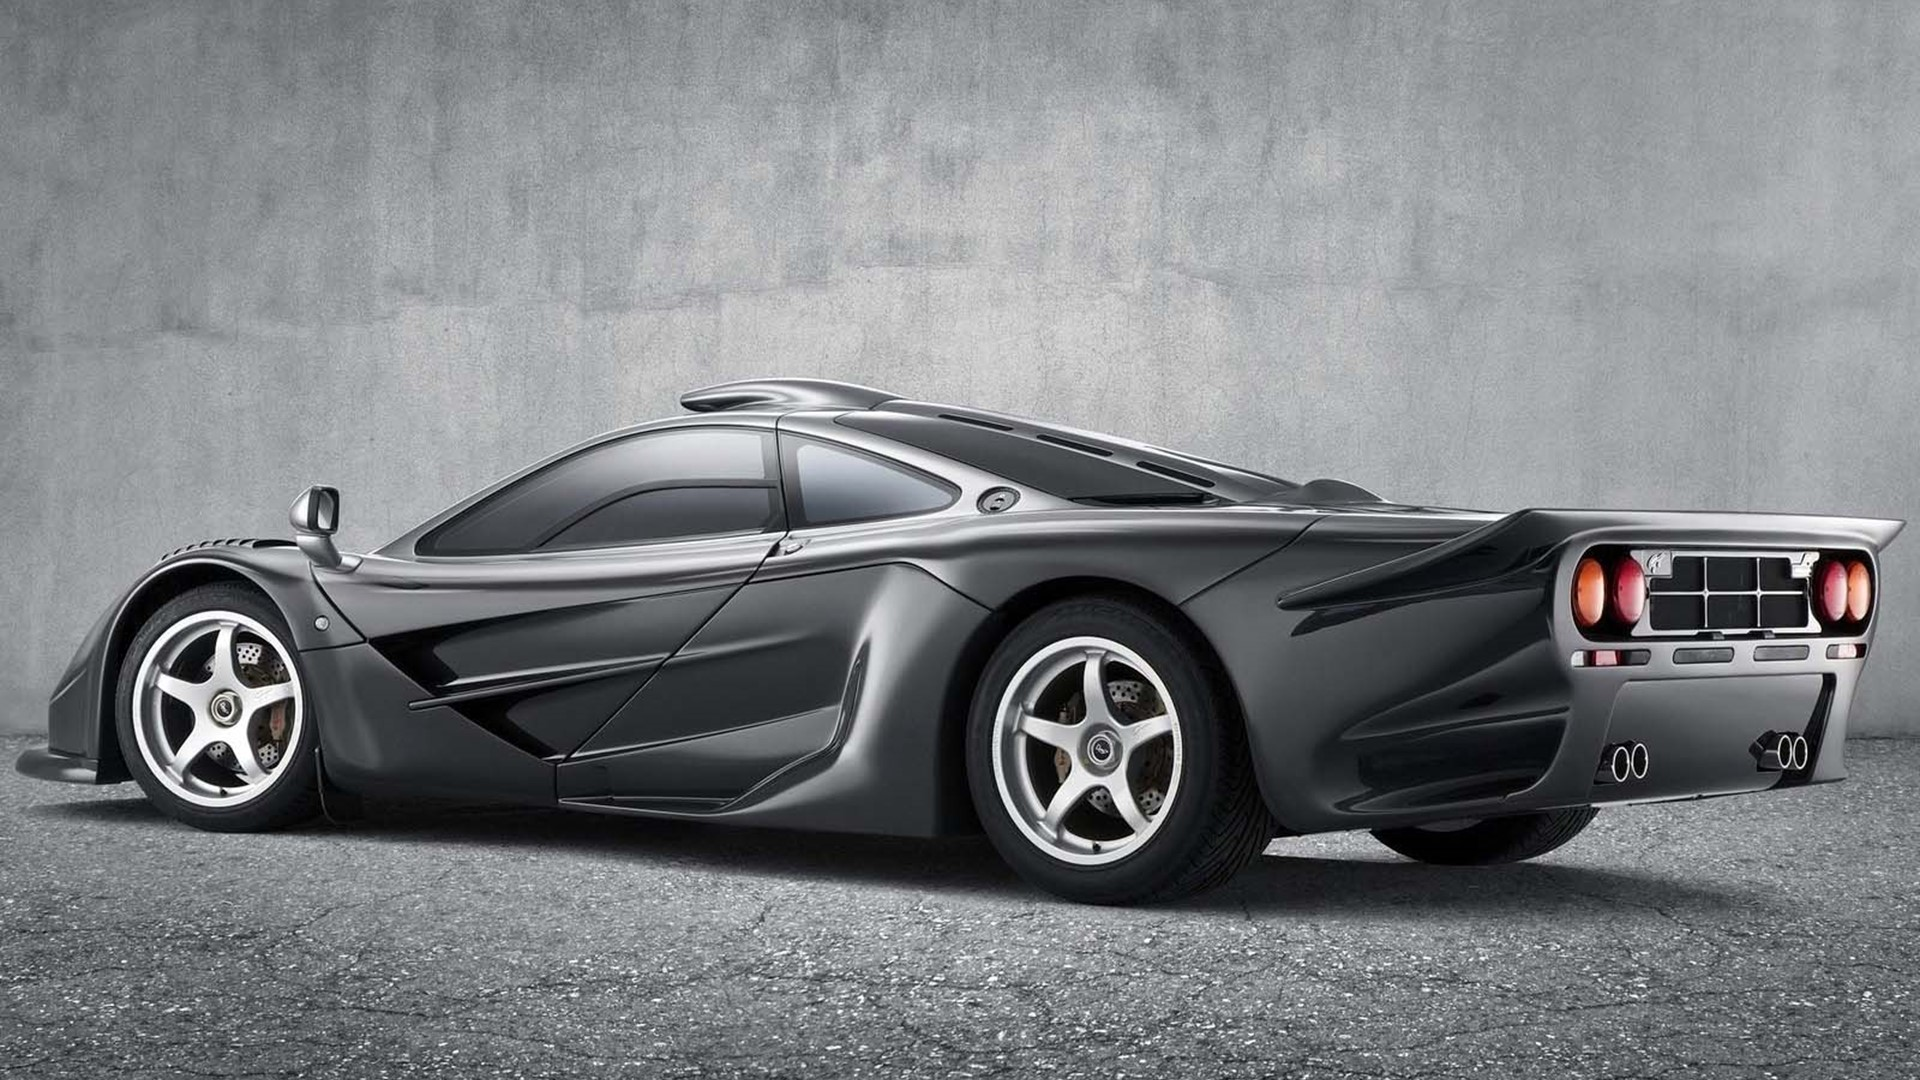 2018 mclaren f1 review and price - noorcars